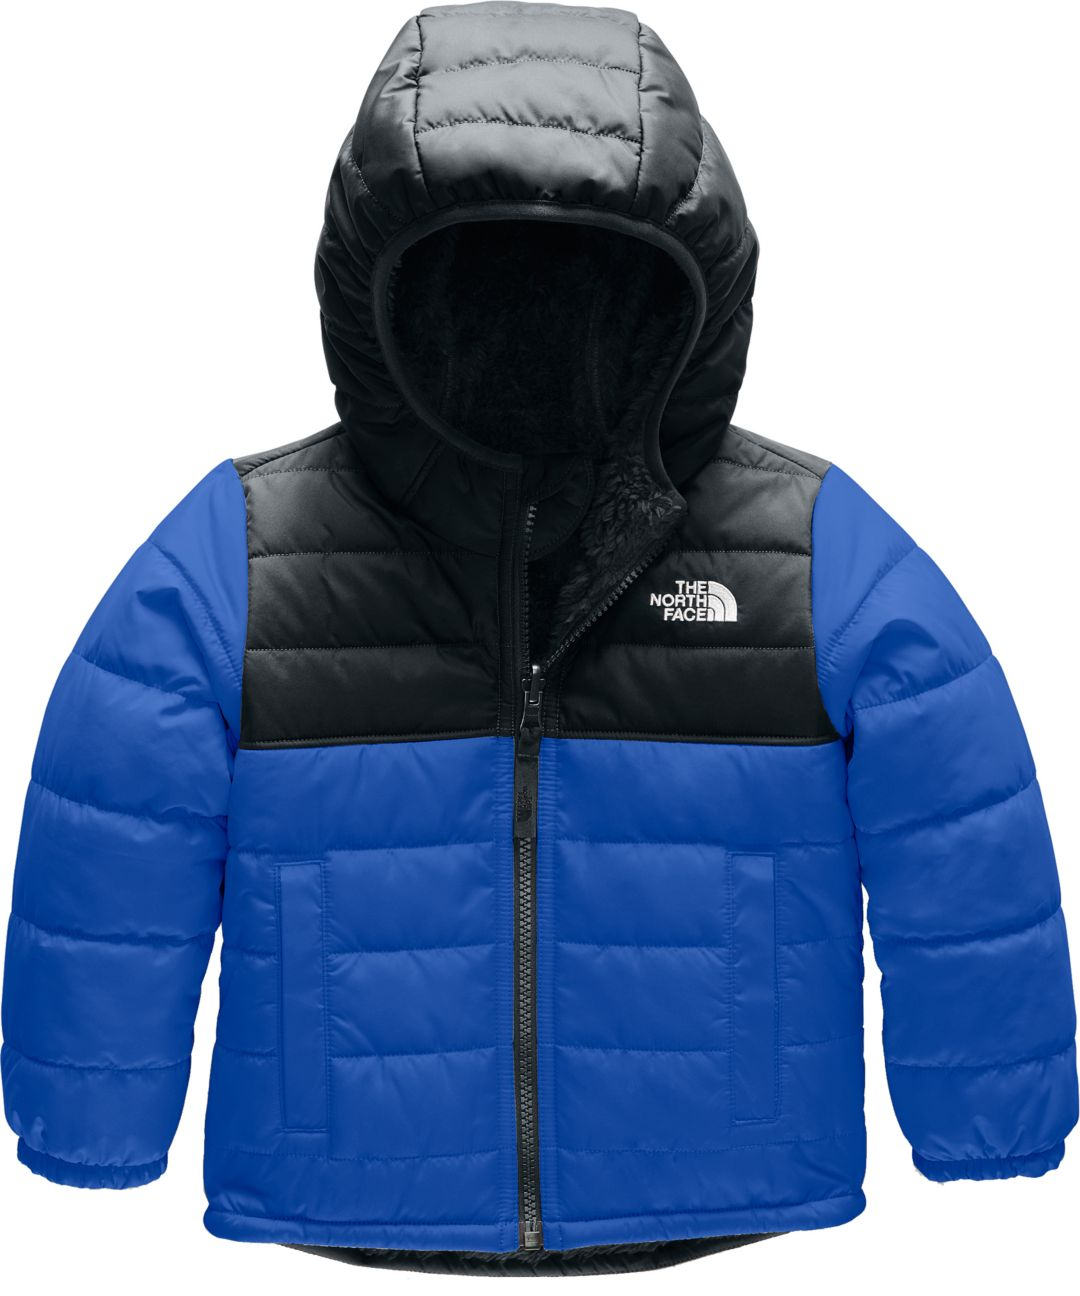 7b3a4f7be The North Face Toddler Boys' Mount Chimborazo Reversible Jacket